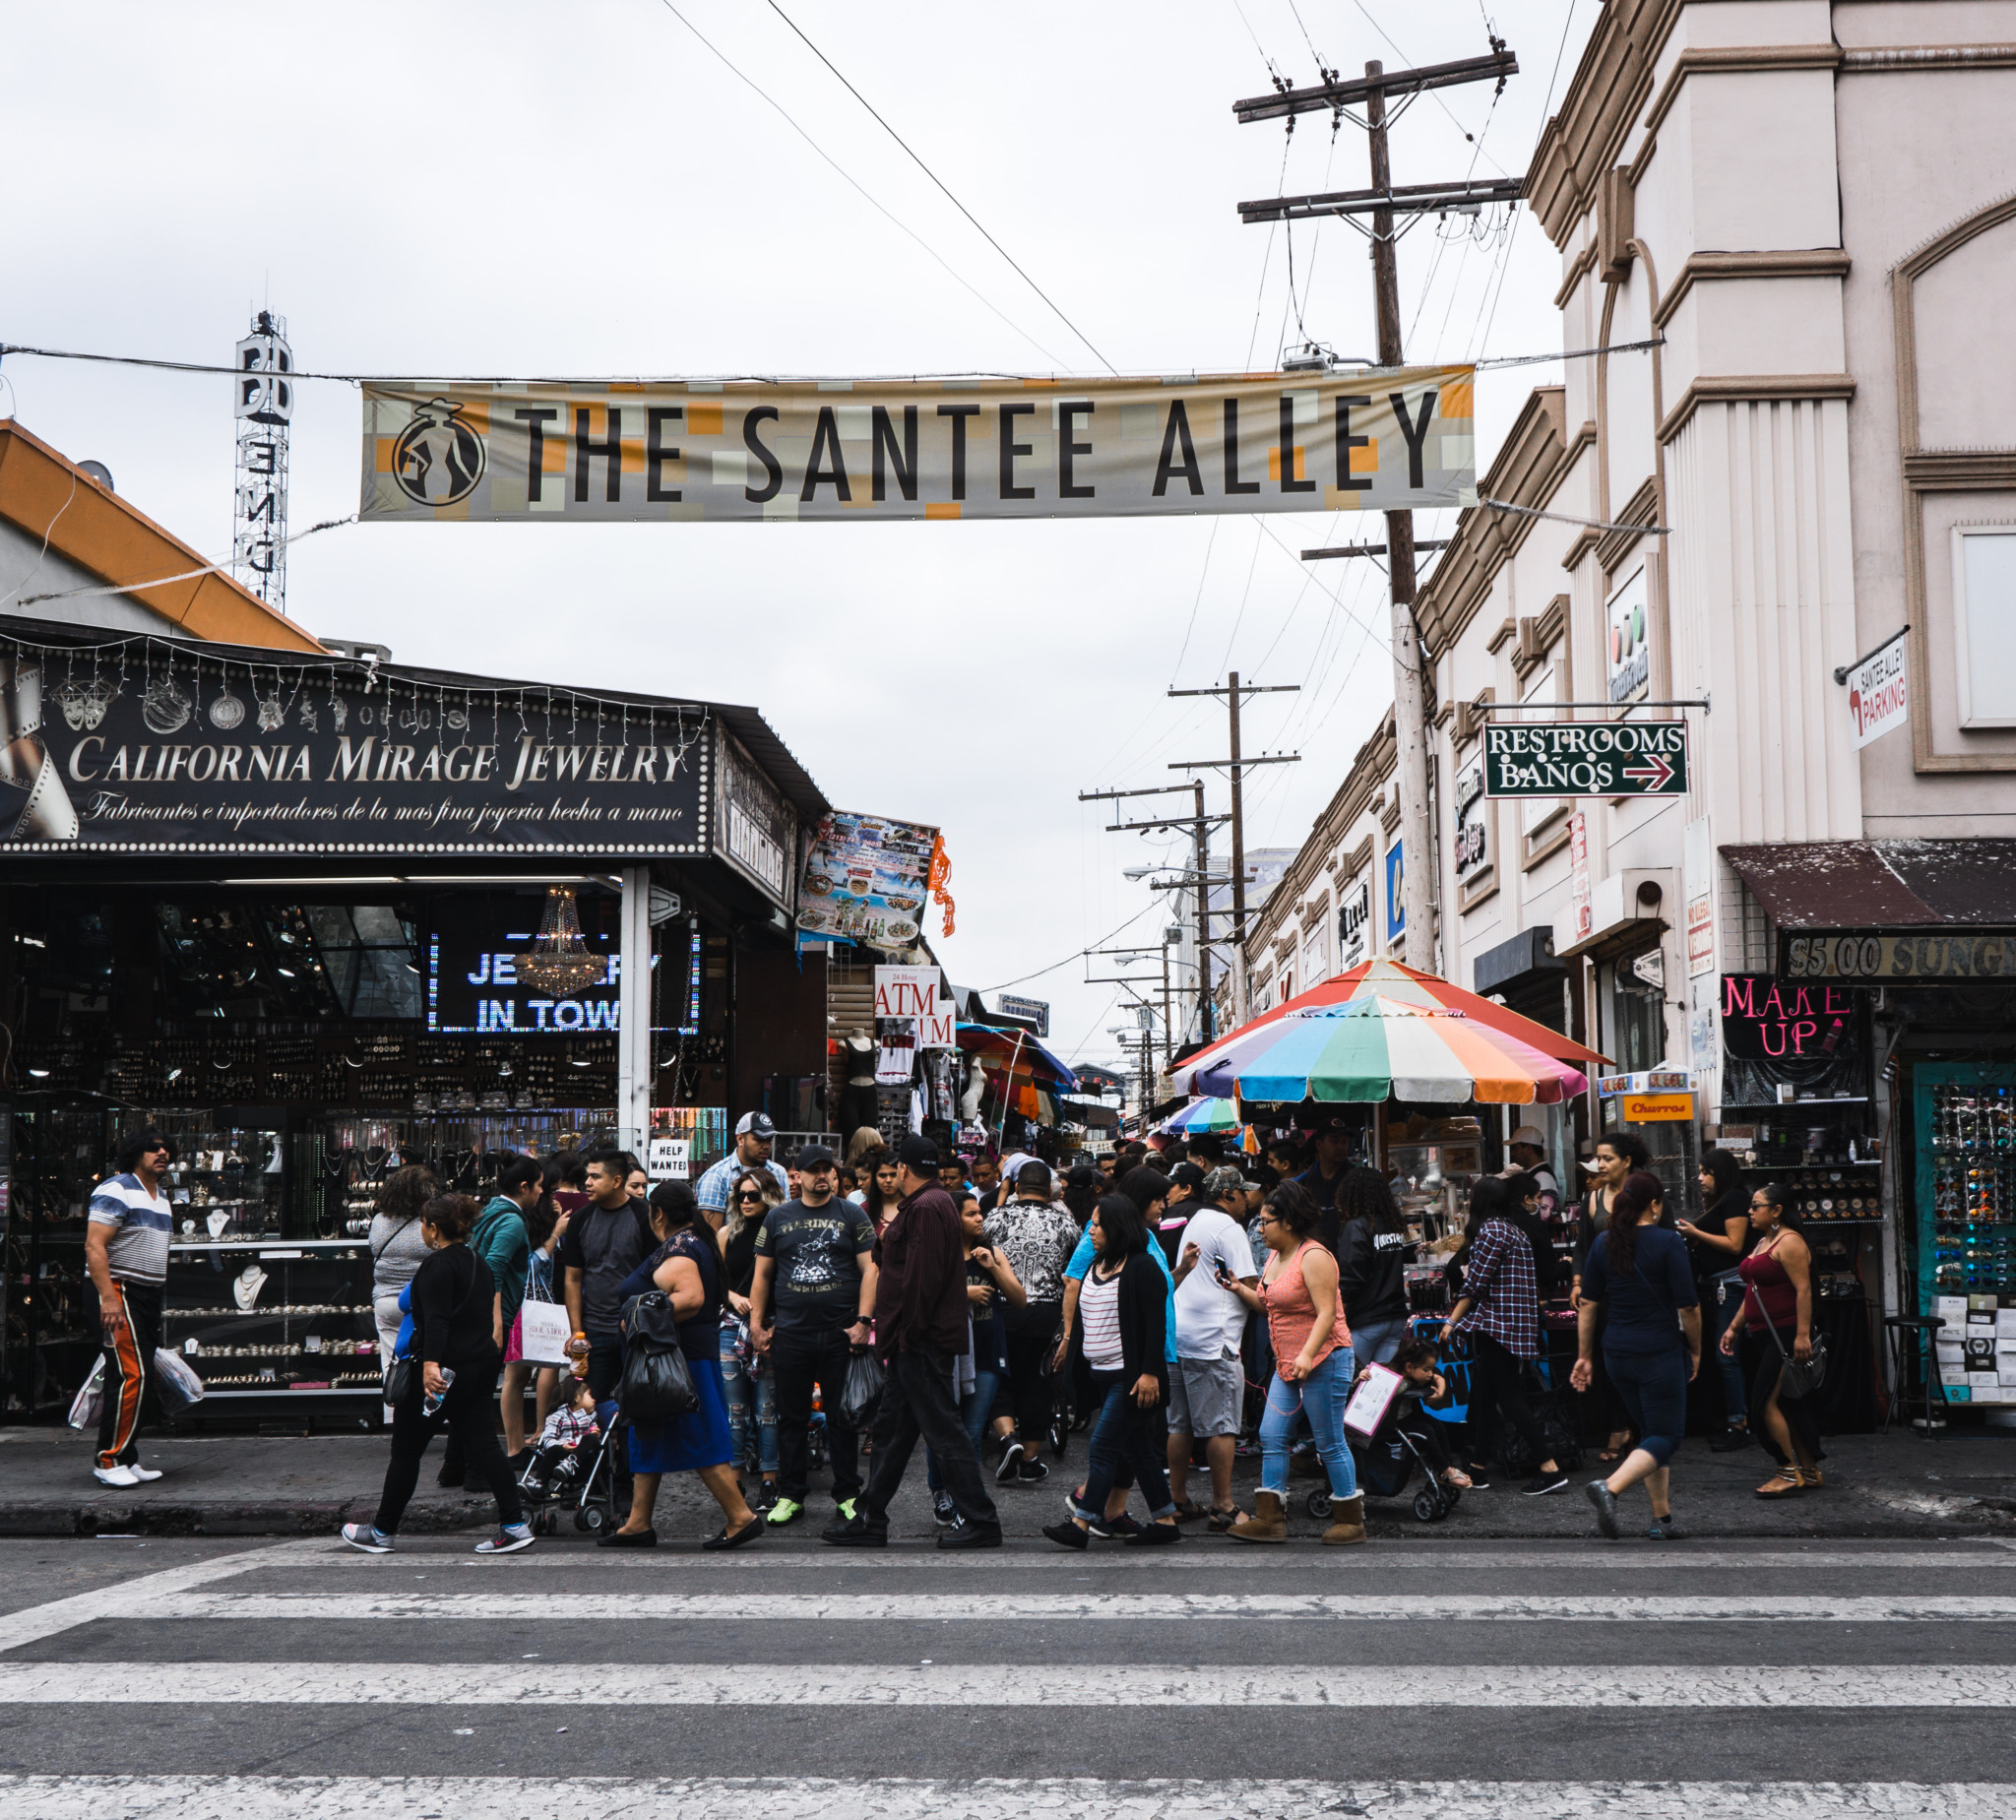 photo of the entrance to The Santee Alley